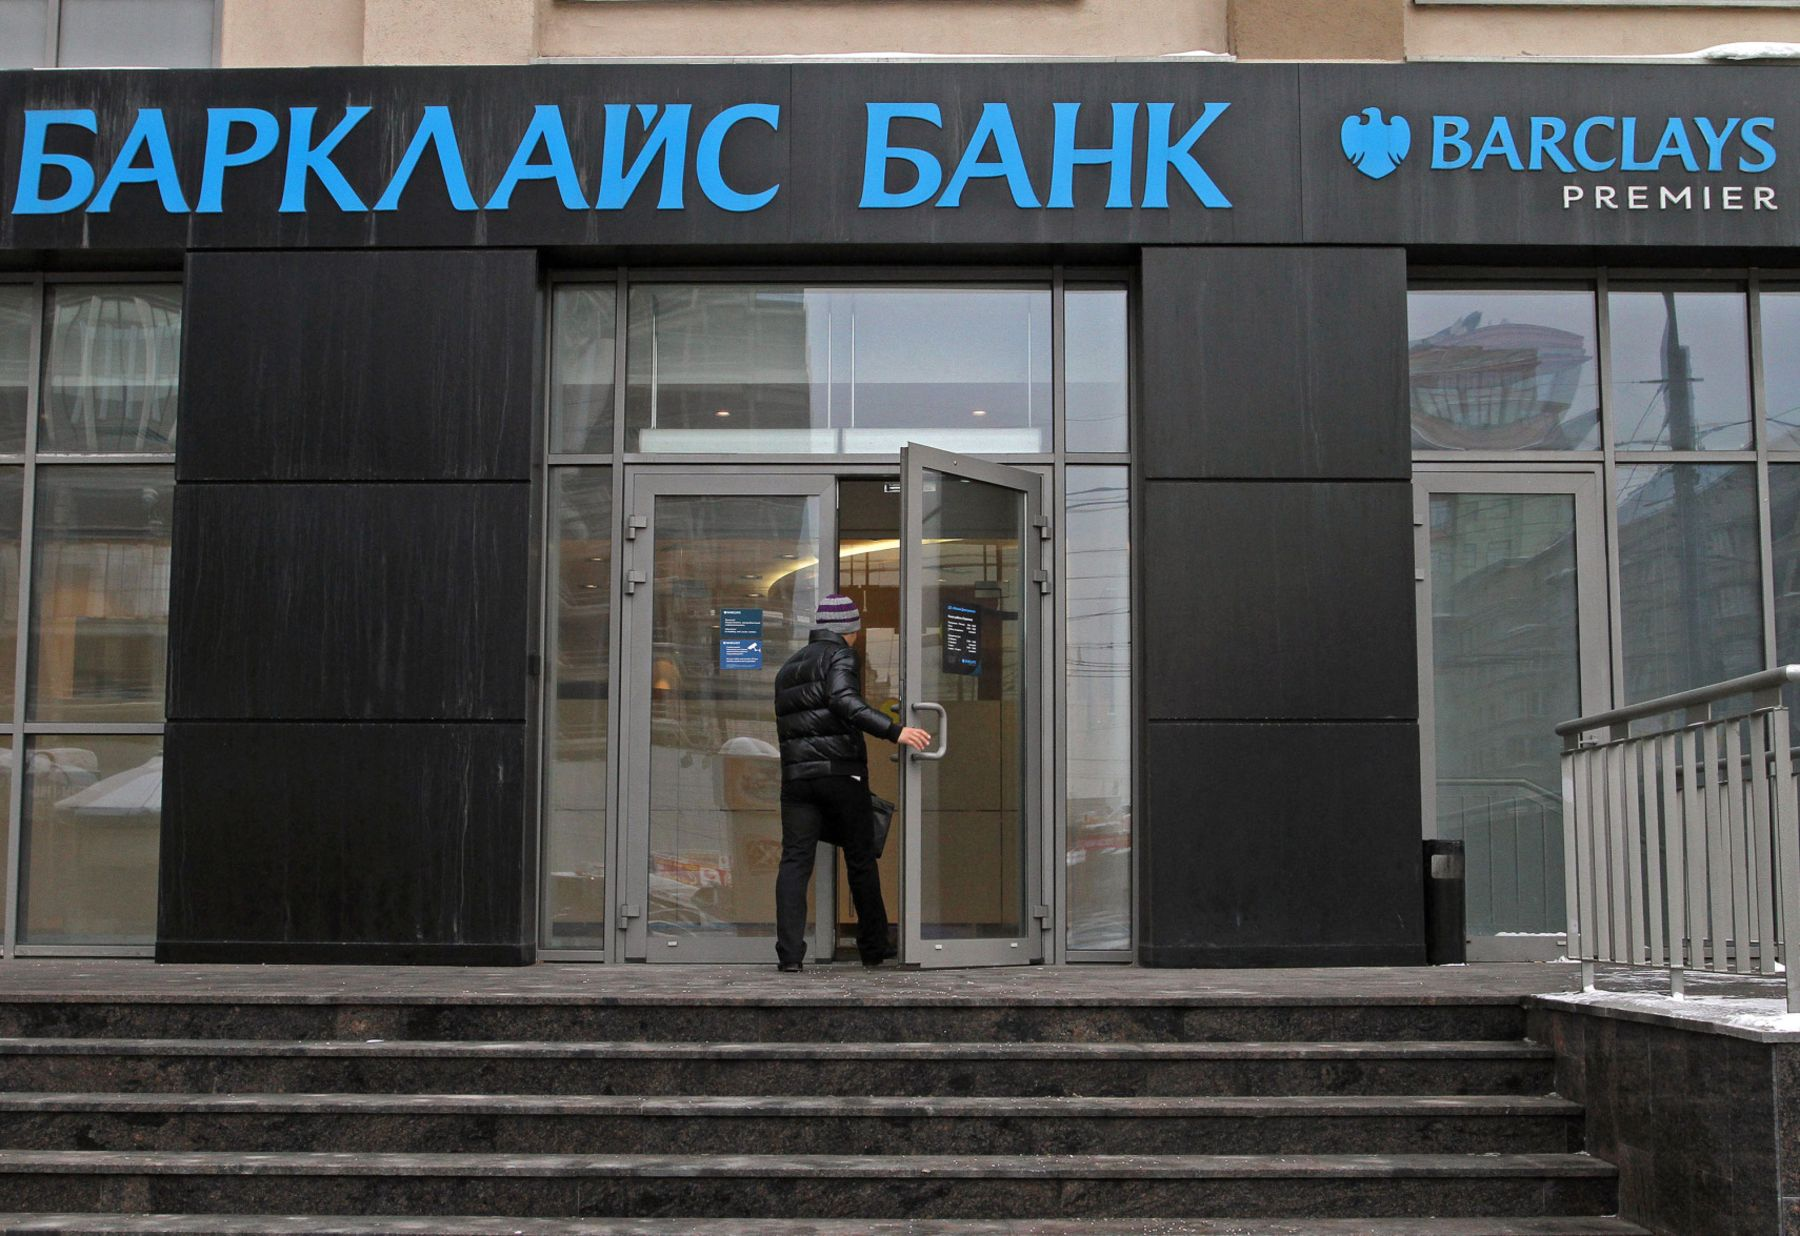 As Barclays Tried to Avoid Bailout, Russia Offered to Buy a Stake